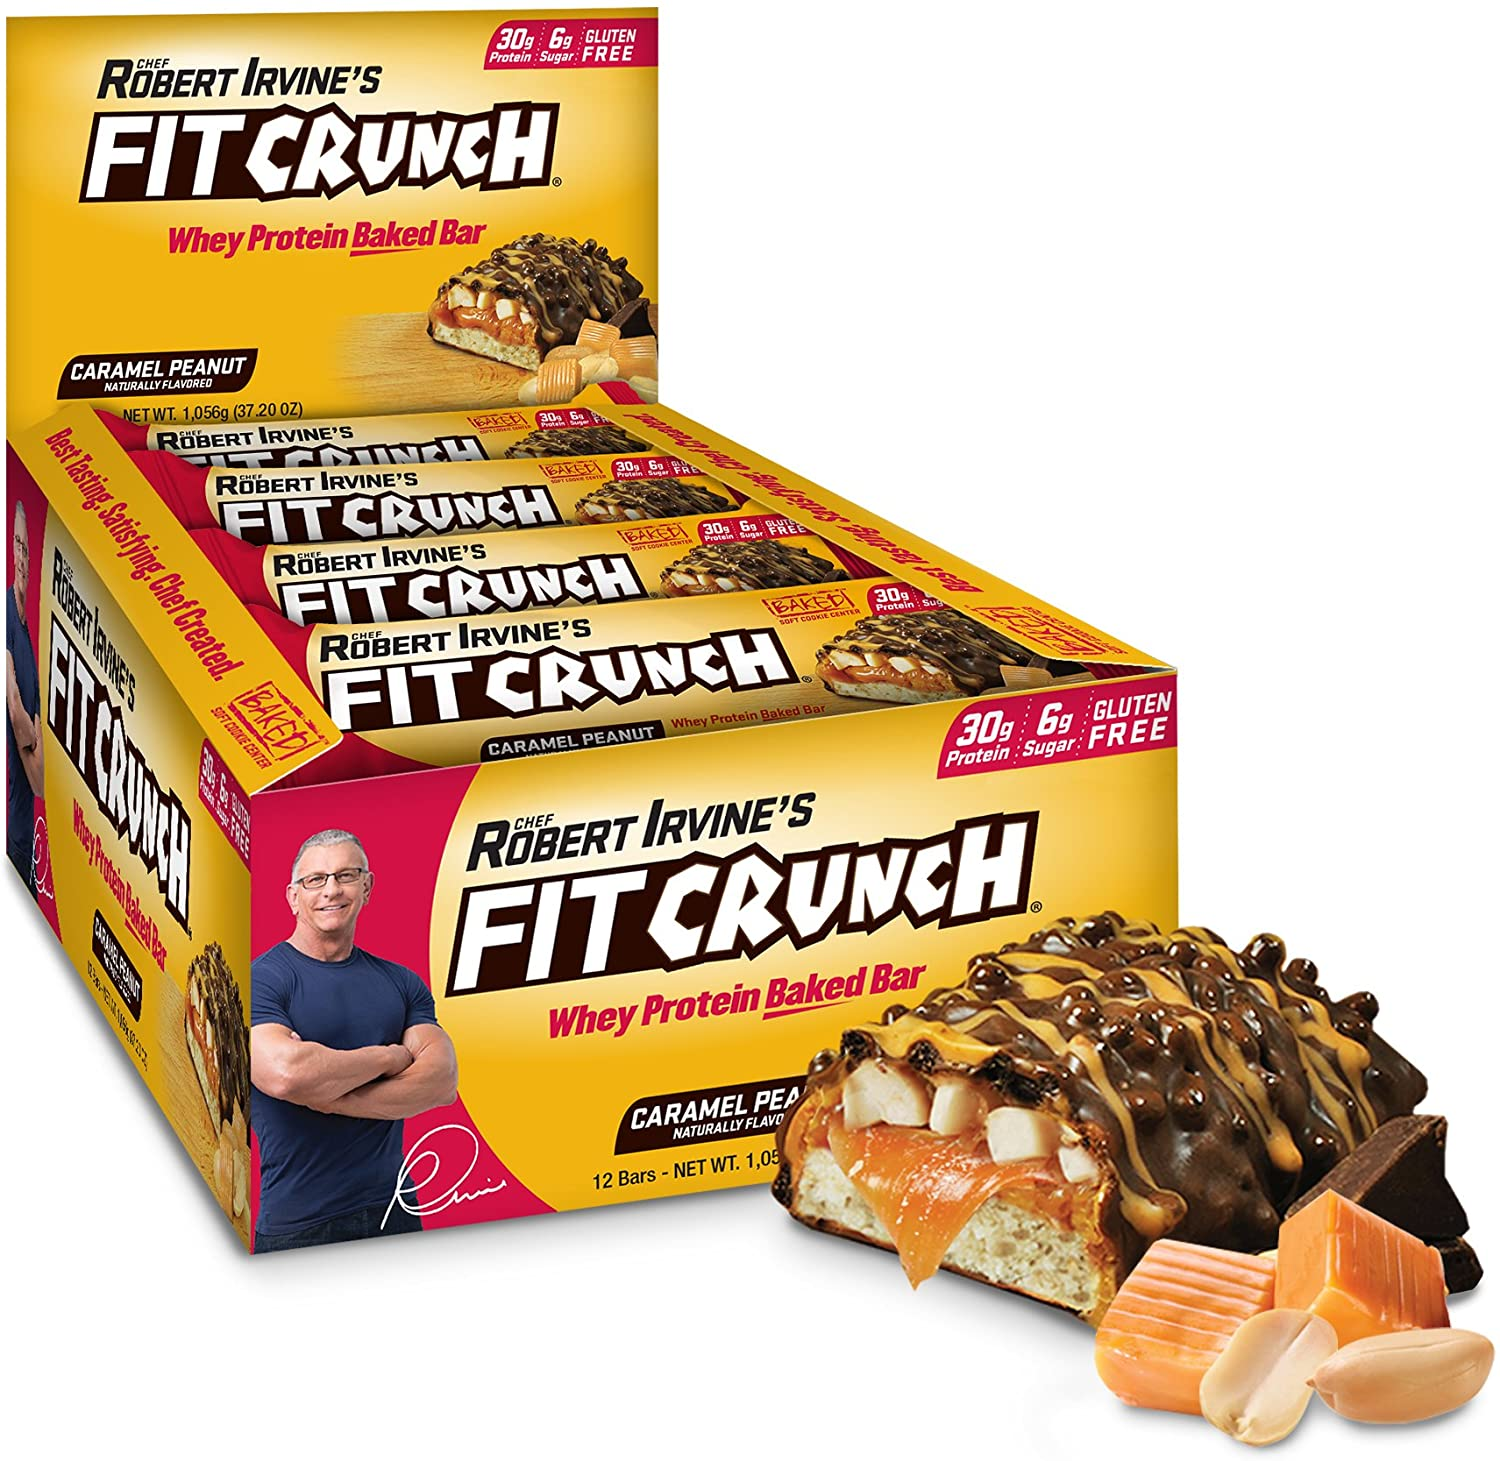 FITCRUNCH Caramel Peanut Whey Protein Bar, 12-Count